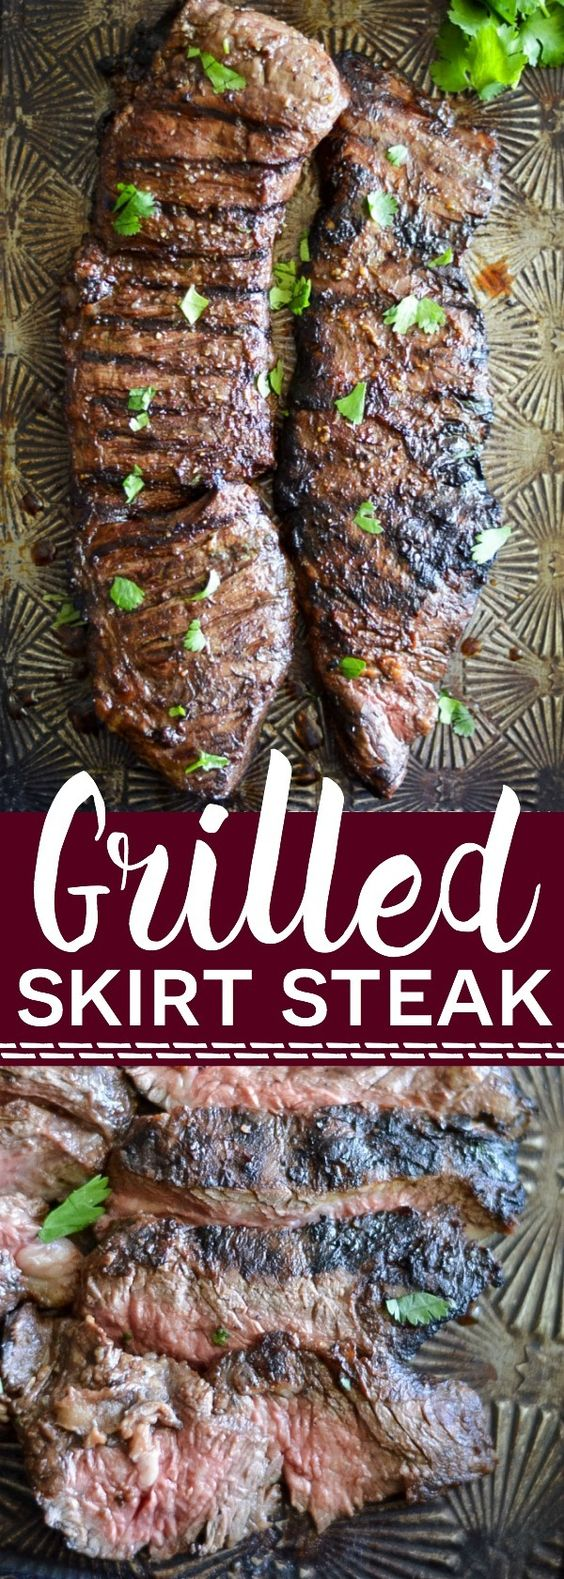 Skirt steak, Steaks and Food blogs on Pinterest